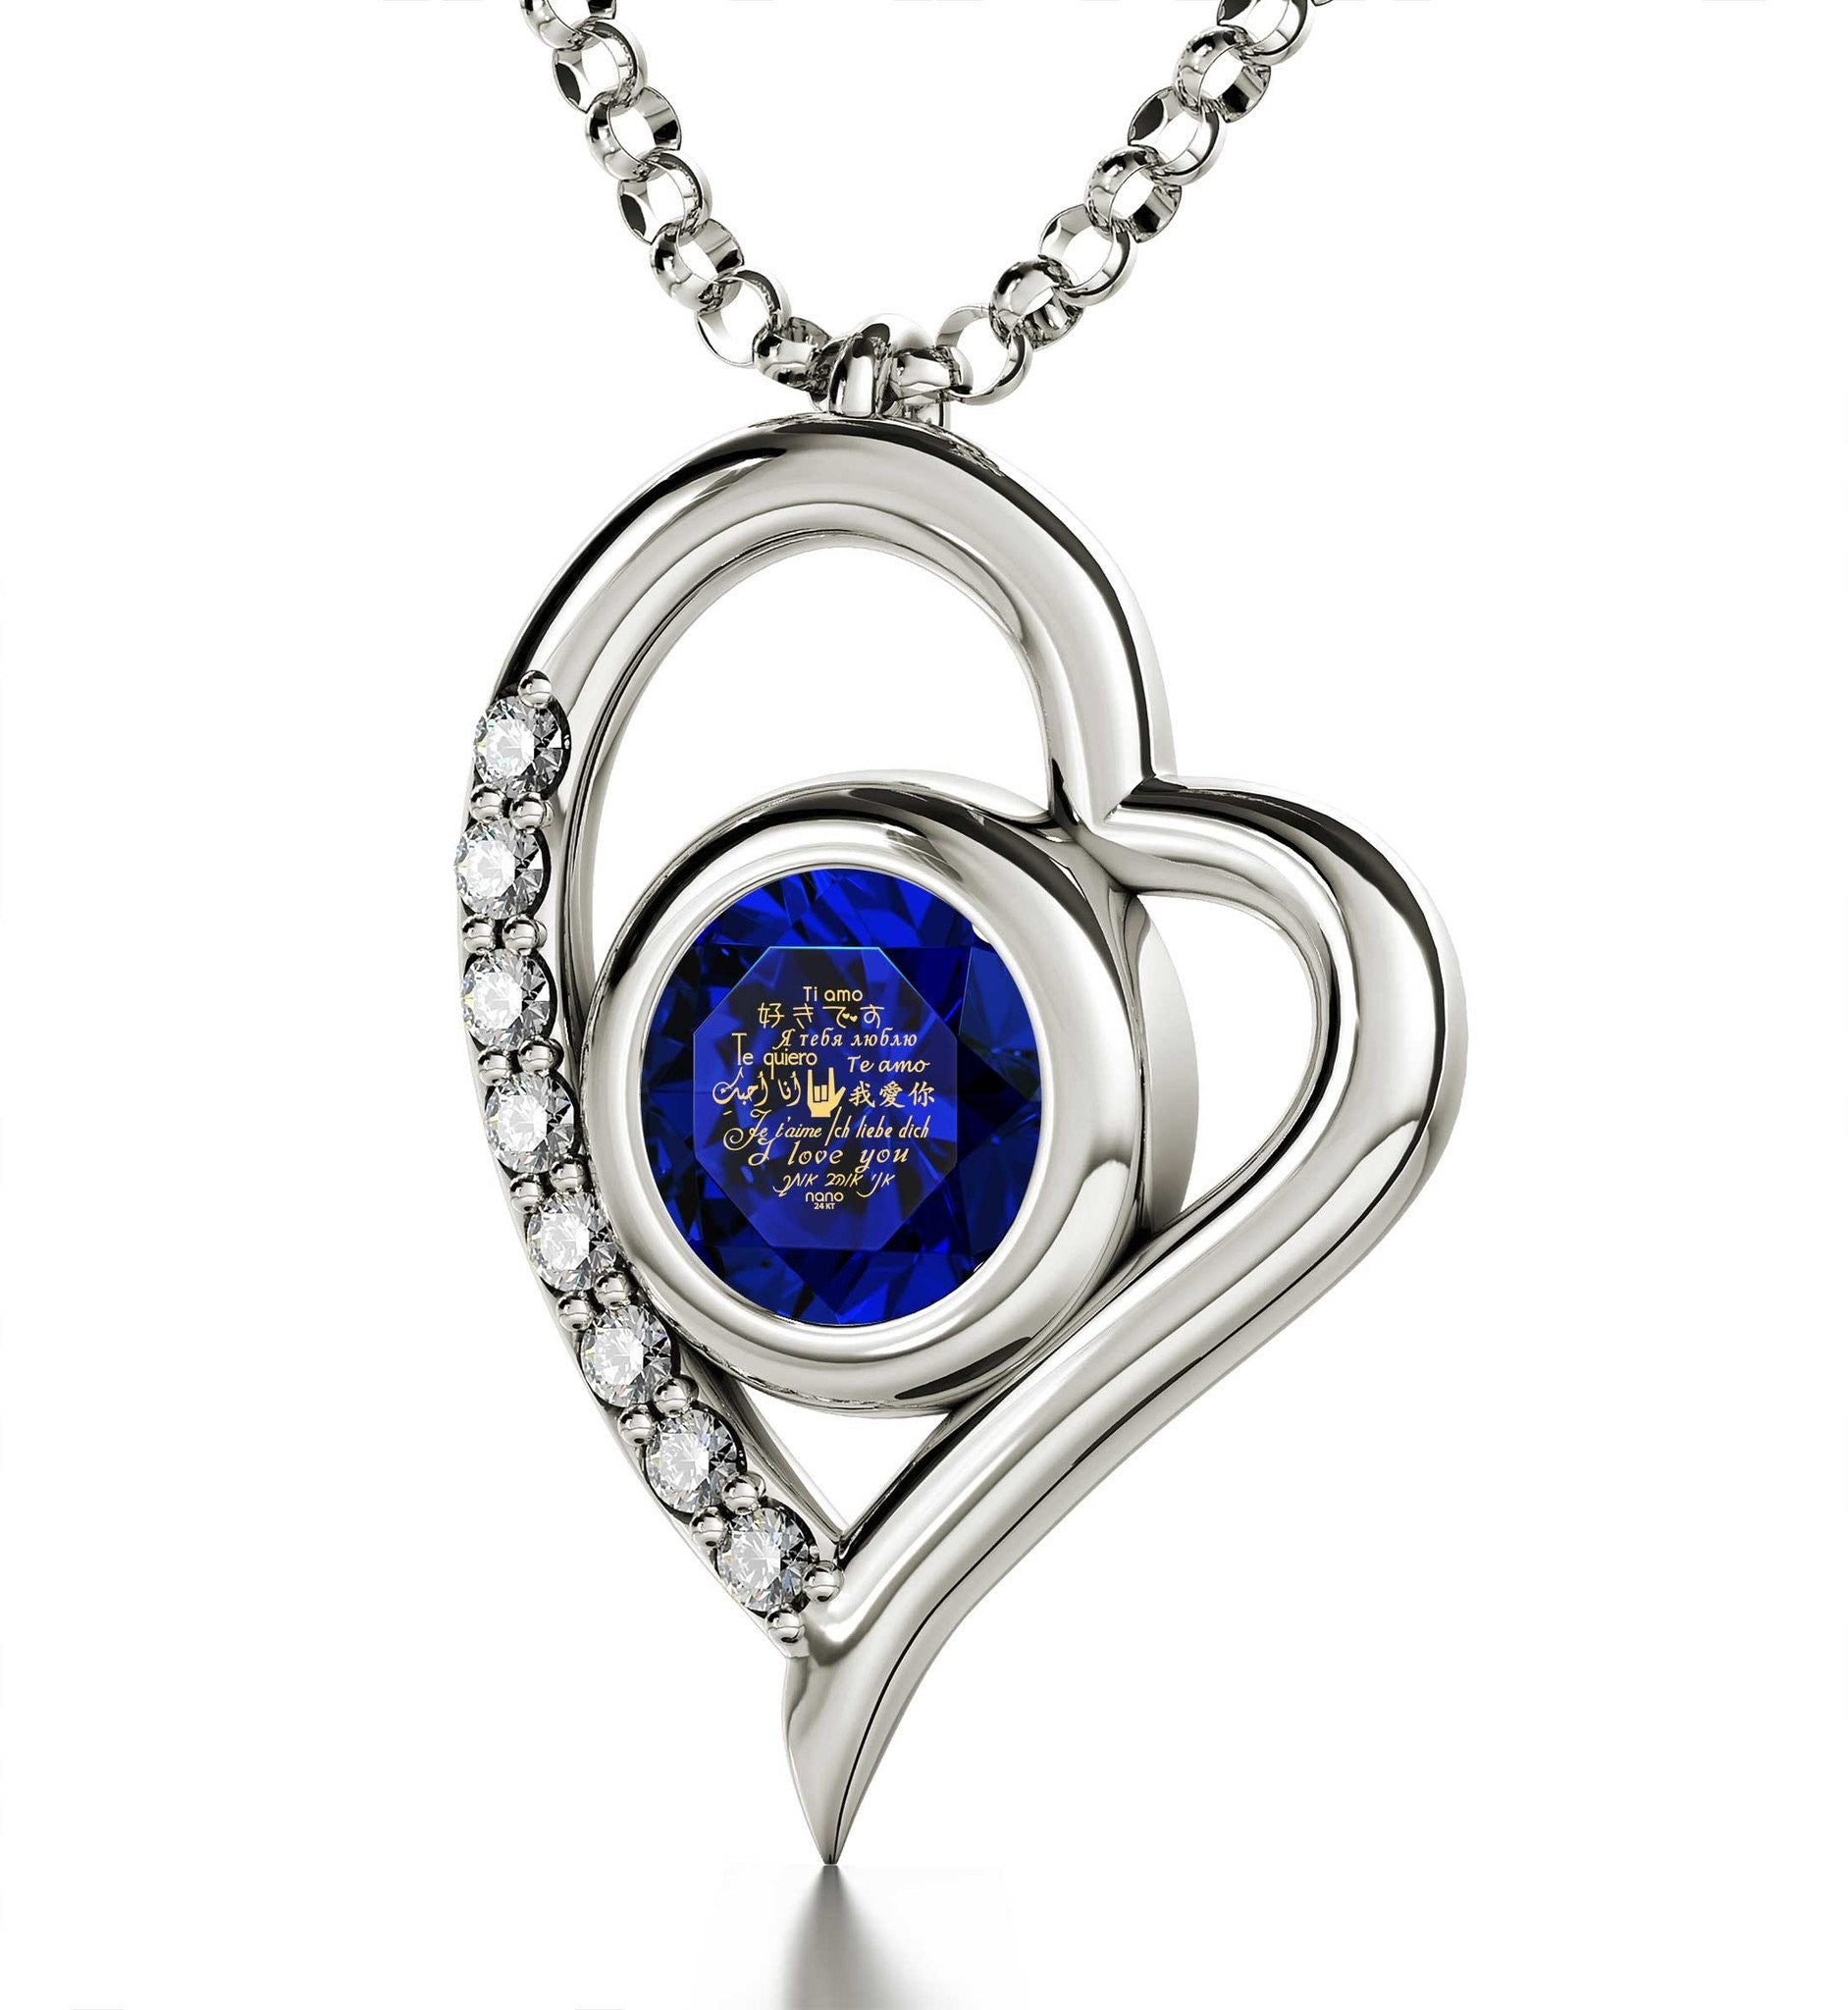 "Good Christmas Gifts for Girlfriend, ""I Love You"" in 12 Languages, Blue Stone Jewelry, Wife Birthday Ideas"